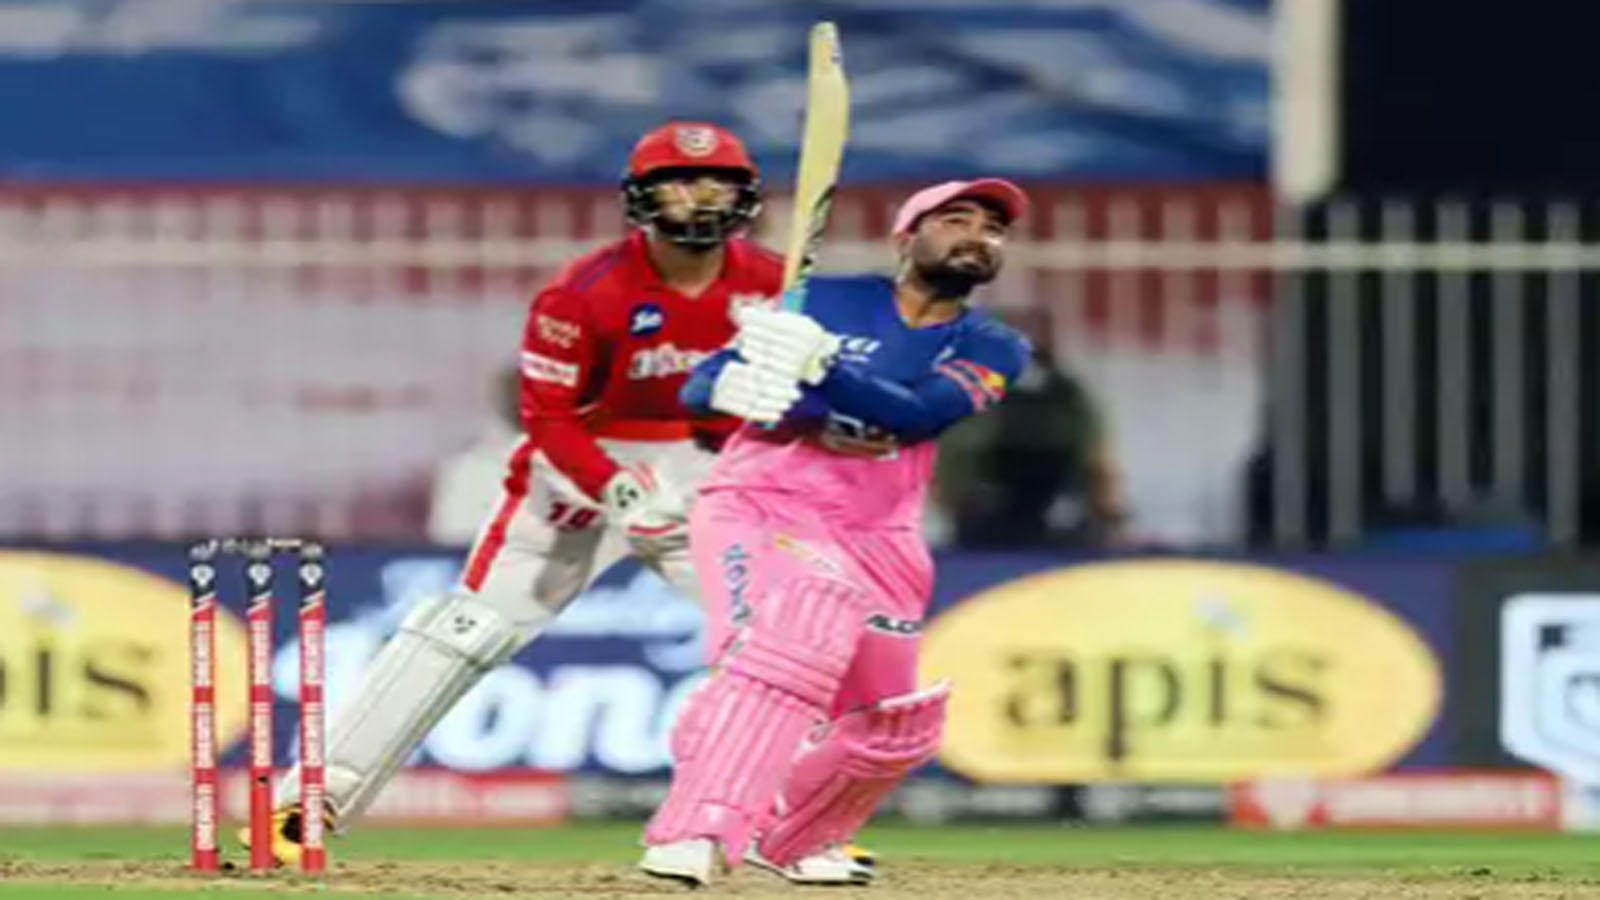 ipl-2020-was-planning-to-hit-6-7-sixes-in-the-last-3-4-overs-vs-kings-xi-punjab-says-rahul-tewatia